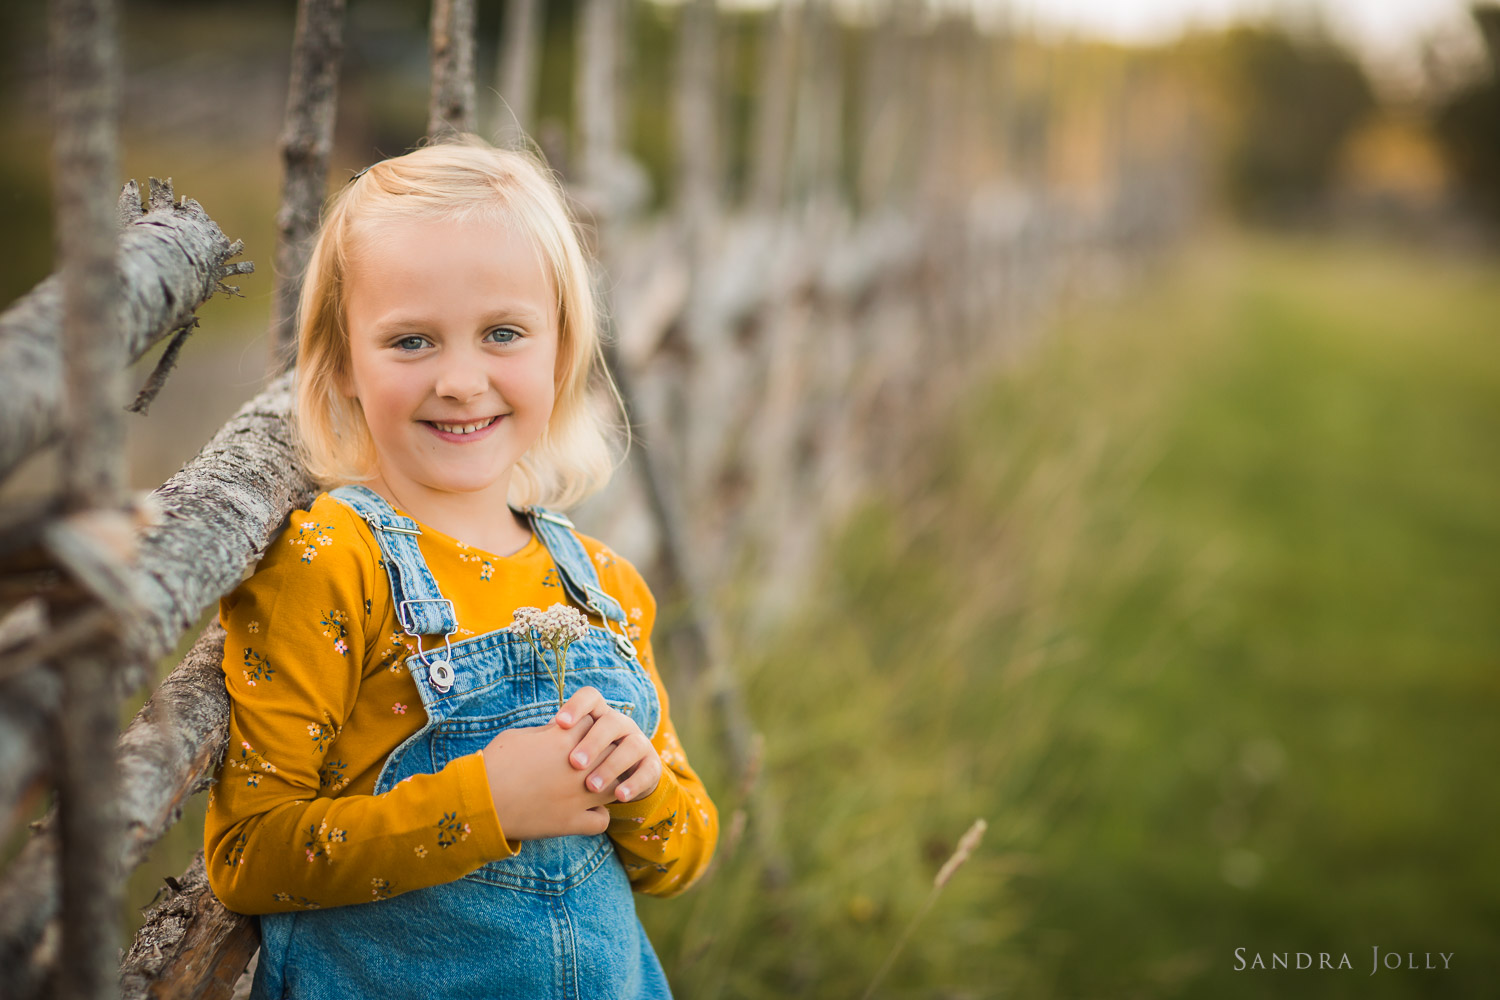 outdoor-child-photography-stockholm-by-barnfotograf-sandra-jolly.jpg